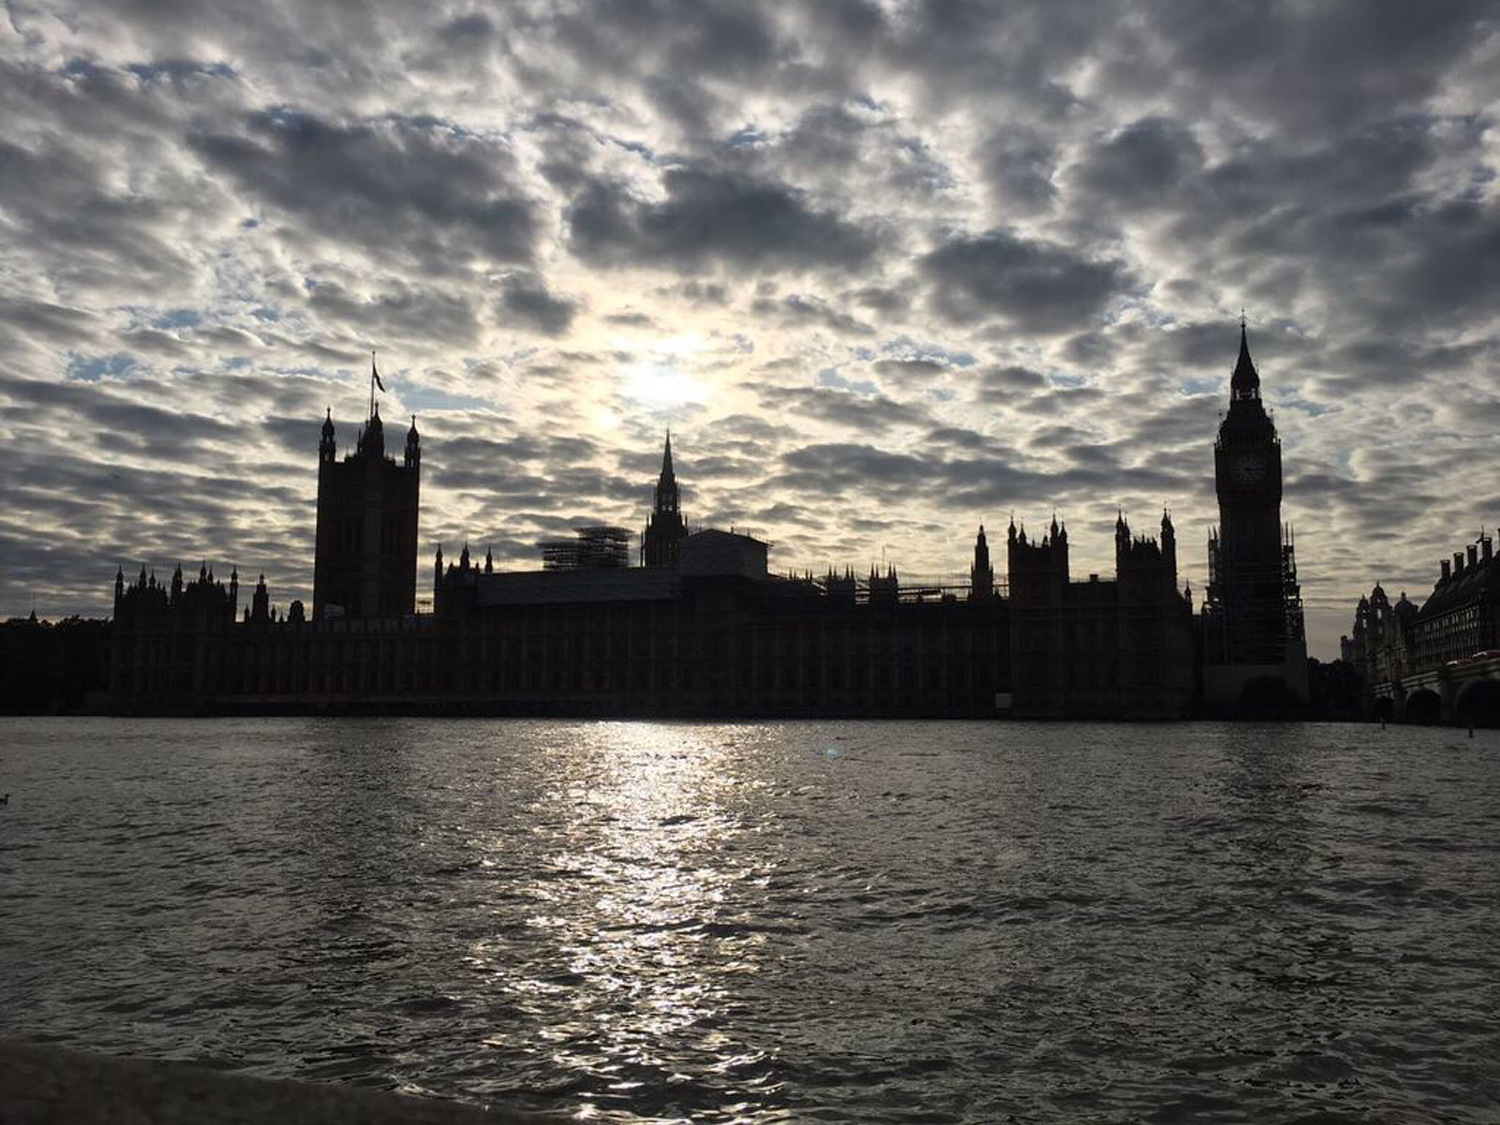 The London skyline appears backlit on a cloudy day.